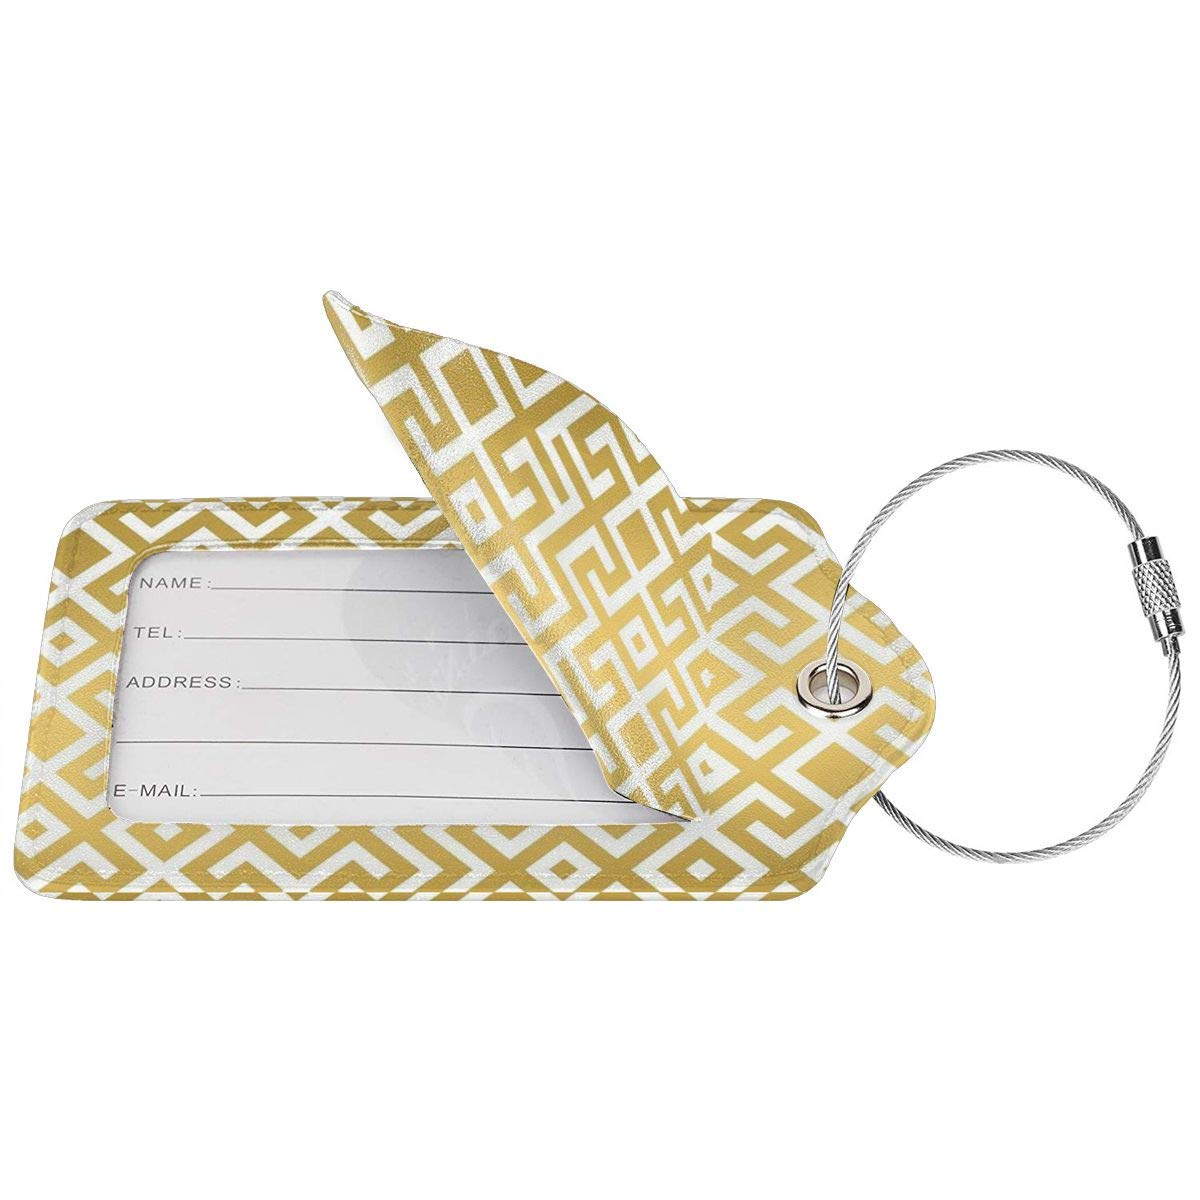 Key Tags for Cruise Ships Honeymoon Gift Leather Luggage Tags Full Privacy Cover and Stainless Steel Loop 1 2 4 Pcs Set Geometric Gold Bars Printed 2.7 x 4.6 Blank Tag